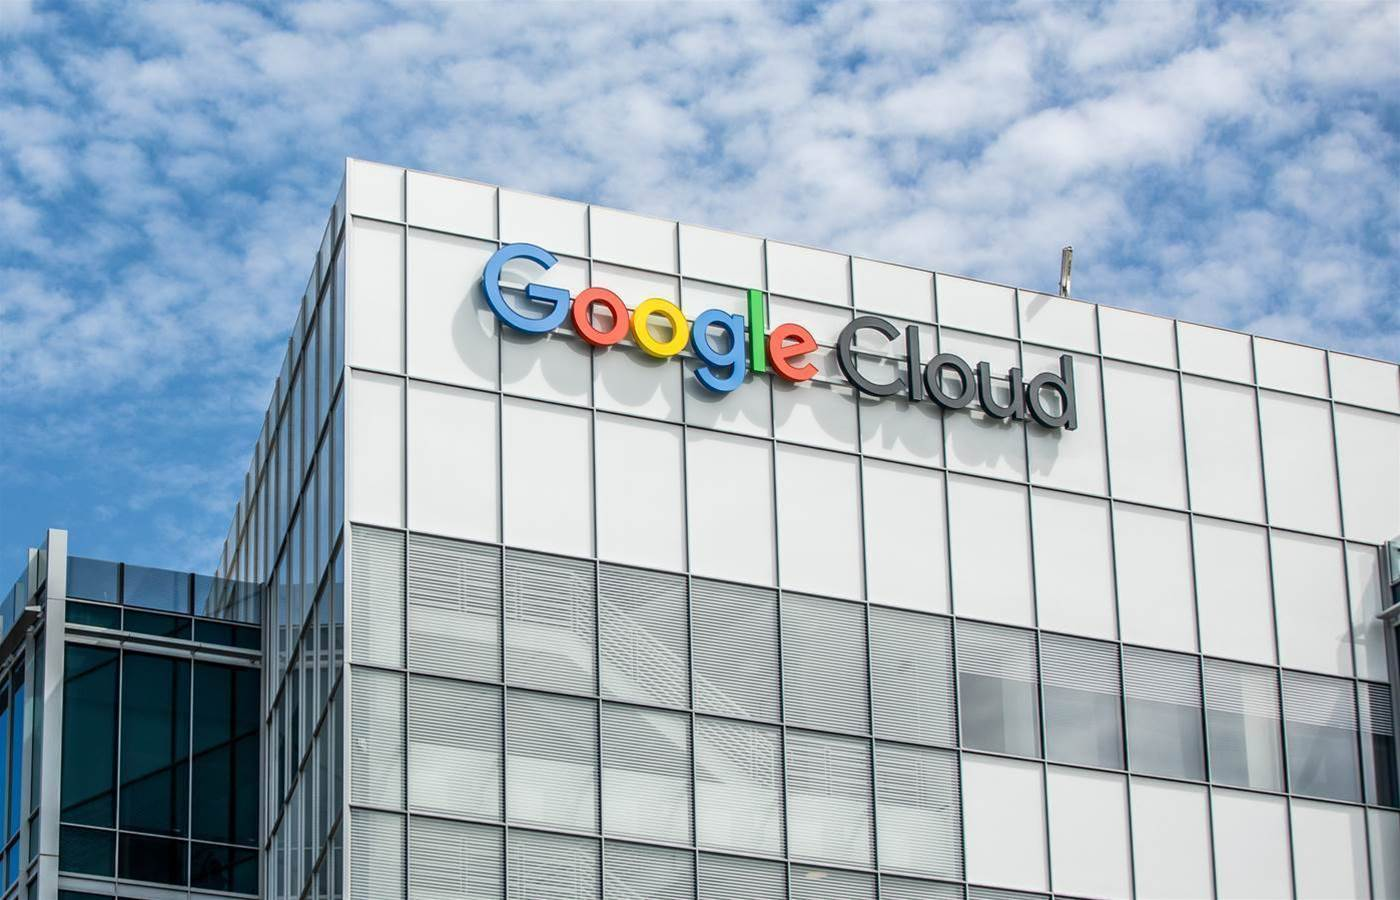 Pay Google $10k/month and get cloud storage free ... for a while